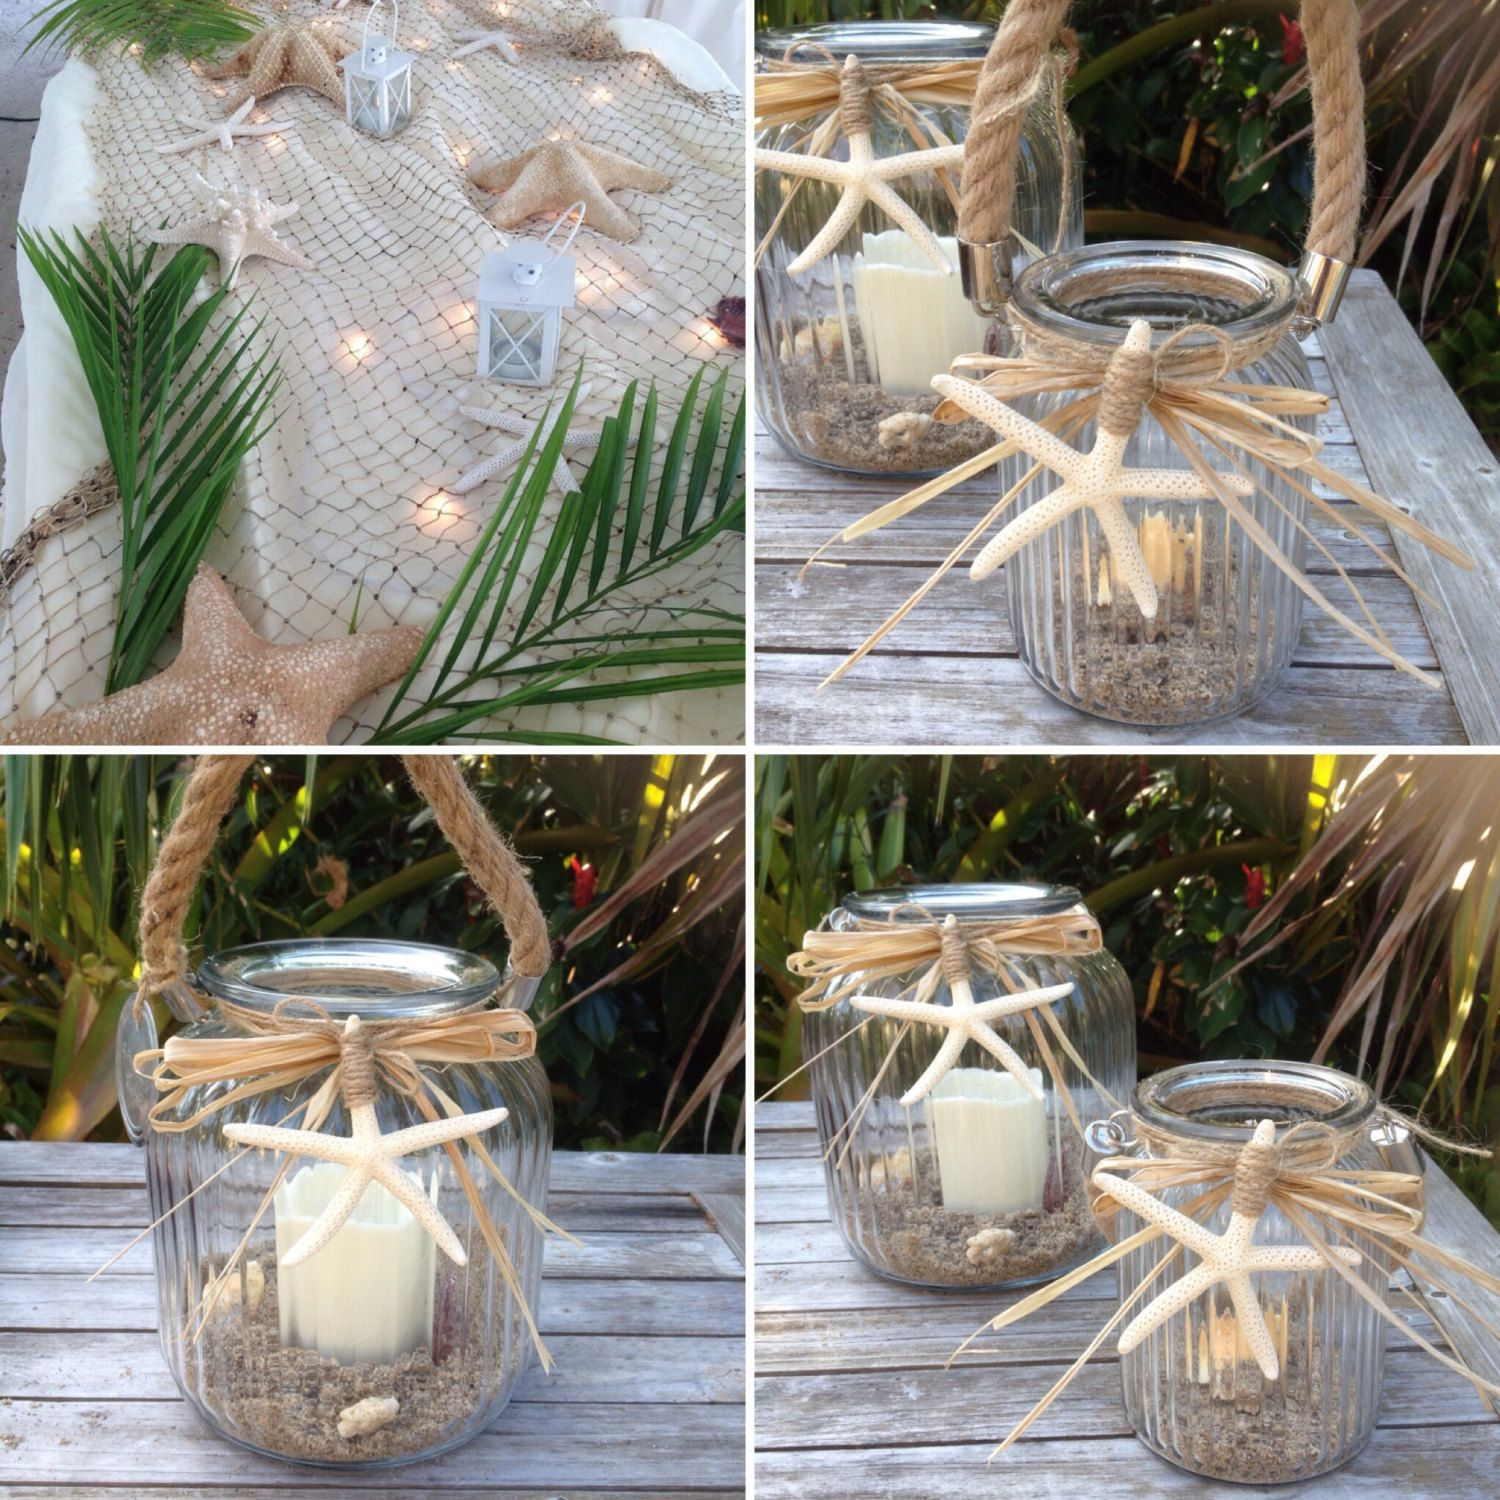 Coastal Glass Lantern ,Beach Wedding Decorations,Starfish Centerpiece, Wedding Lantern,Starfish Lantern